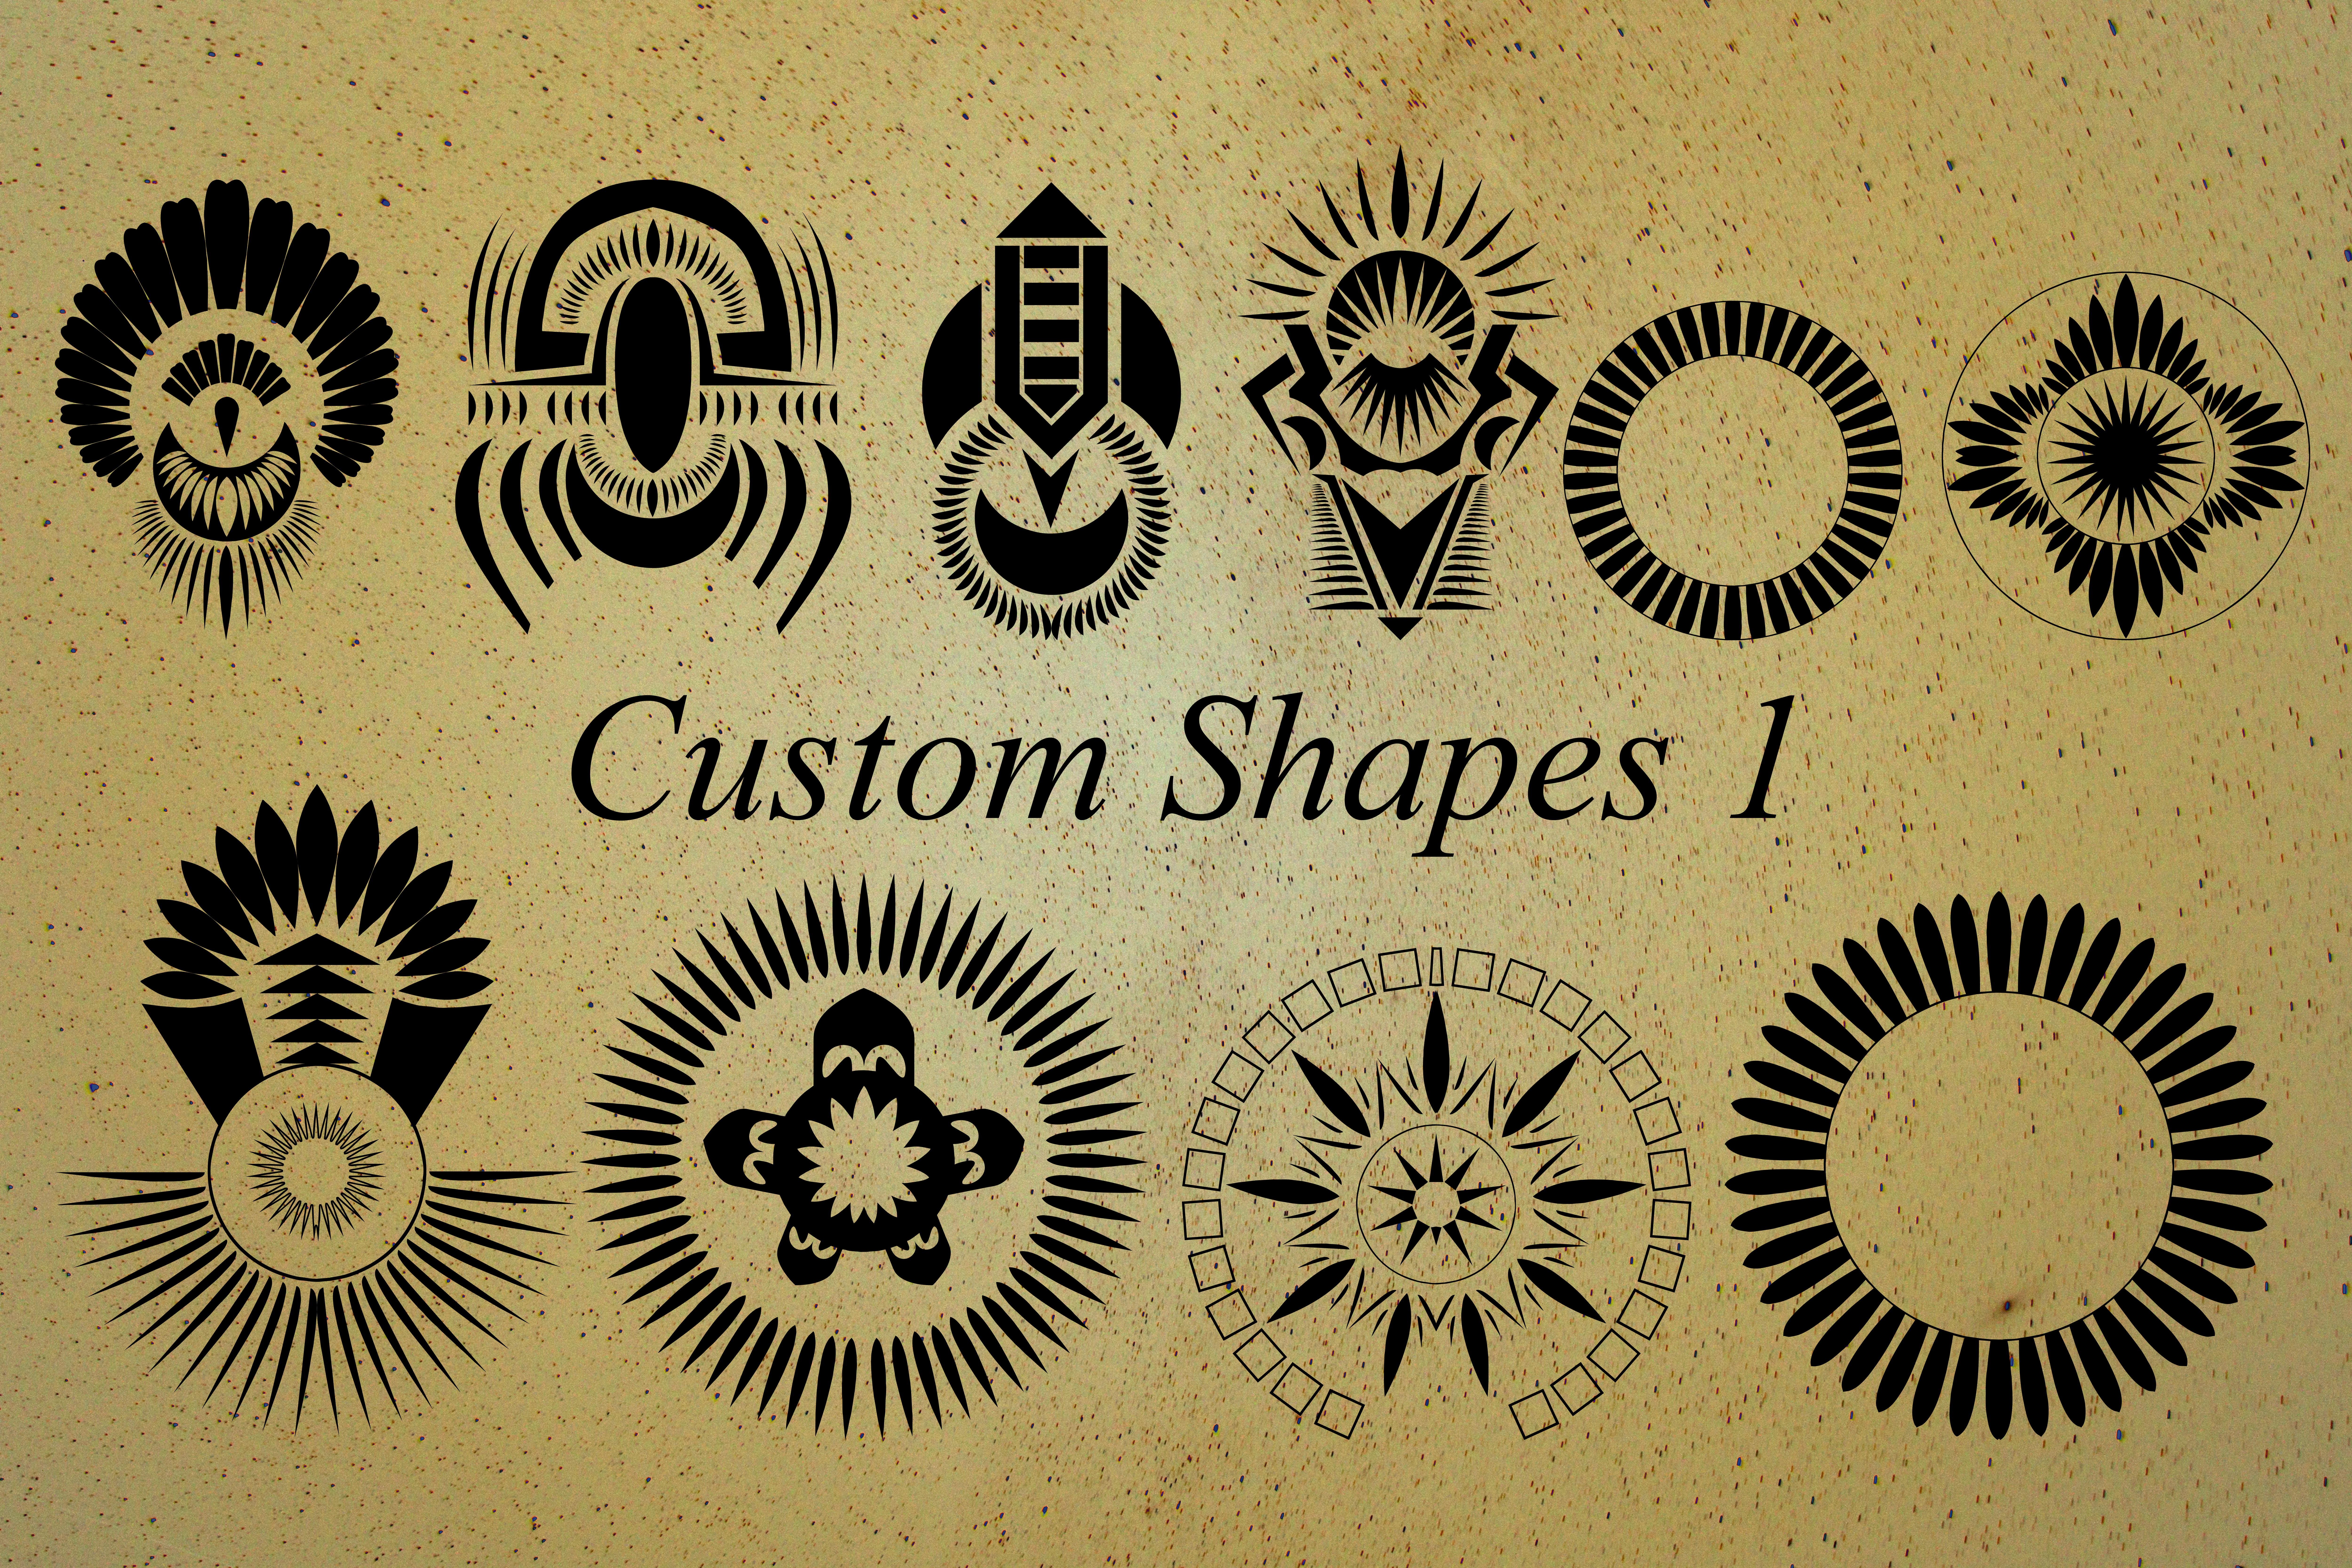 Revelation custom shapes 1